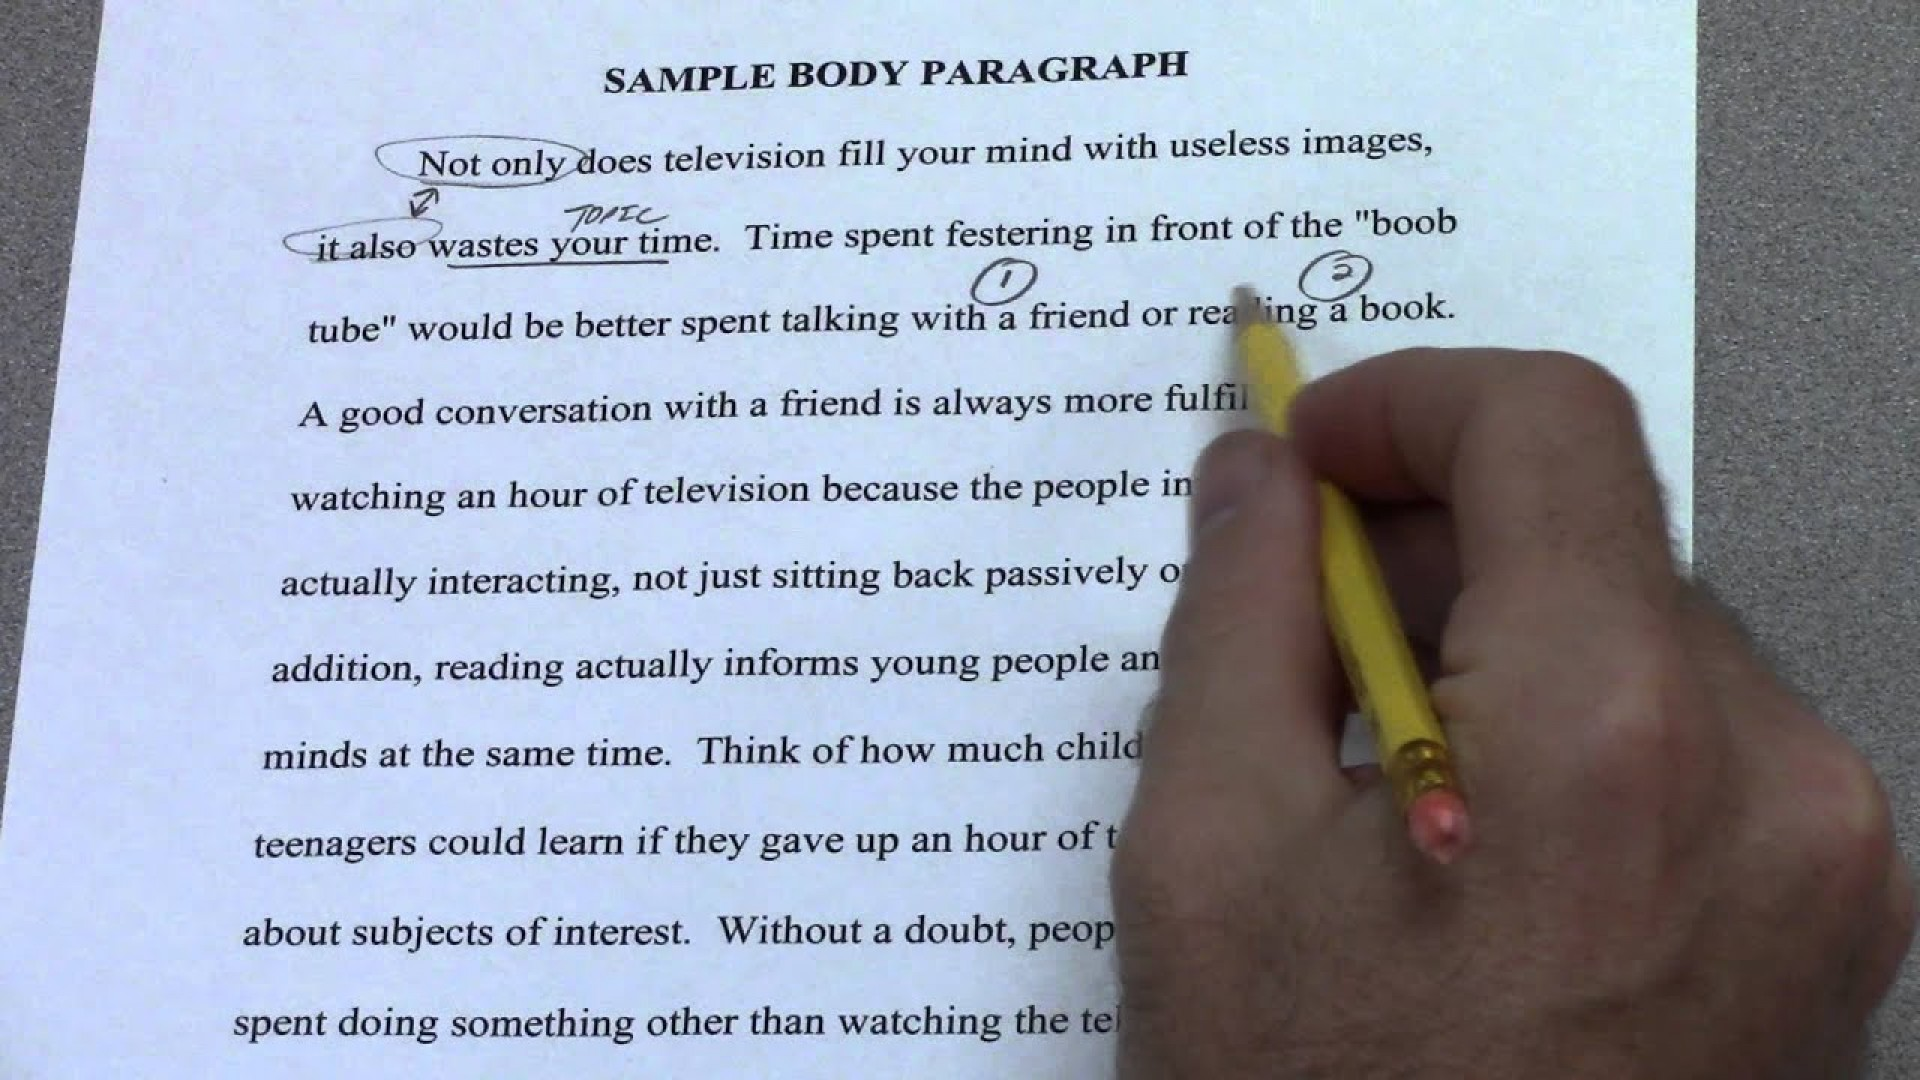 011 Maxresdefault Essay Body Paragraph Impressive Persuasive Example Topic Sentence Transition Words 1920